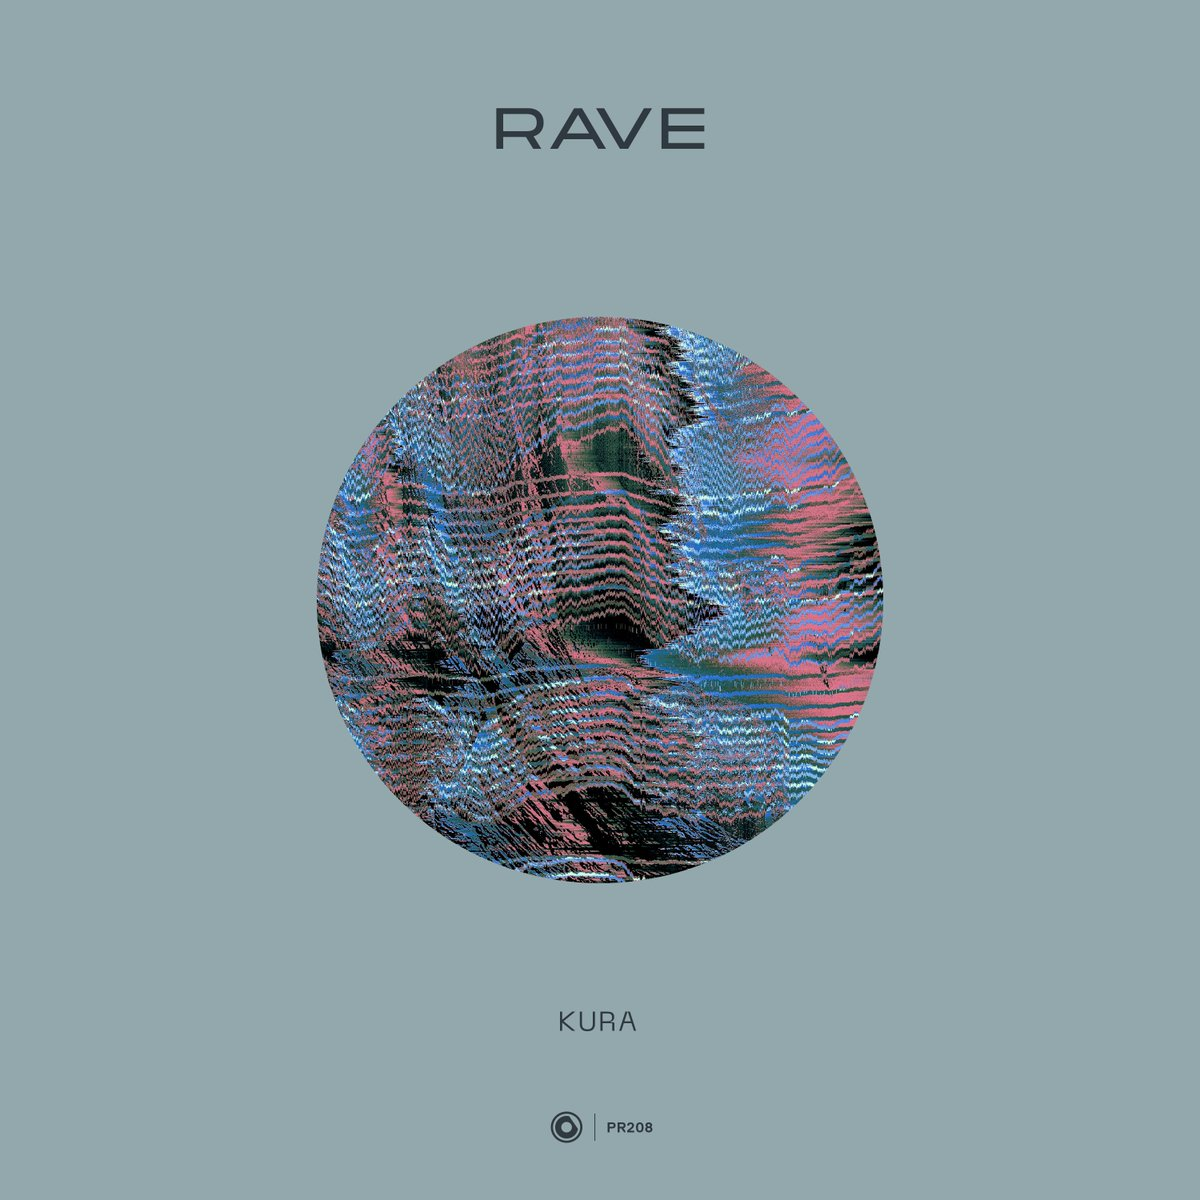 """Portuguese boss @KURA_live has his single debut on Protocol with """"Rave""""! 🕺 Dropping this Friday! 👉 Pre-save now: https://t.co/OmpKgyCLGC https://t.co/MvdCsT62pf"""